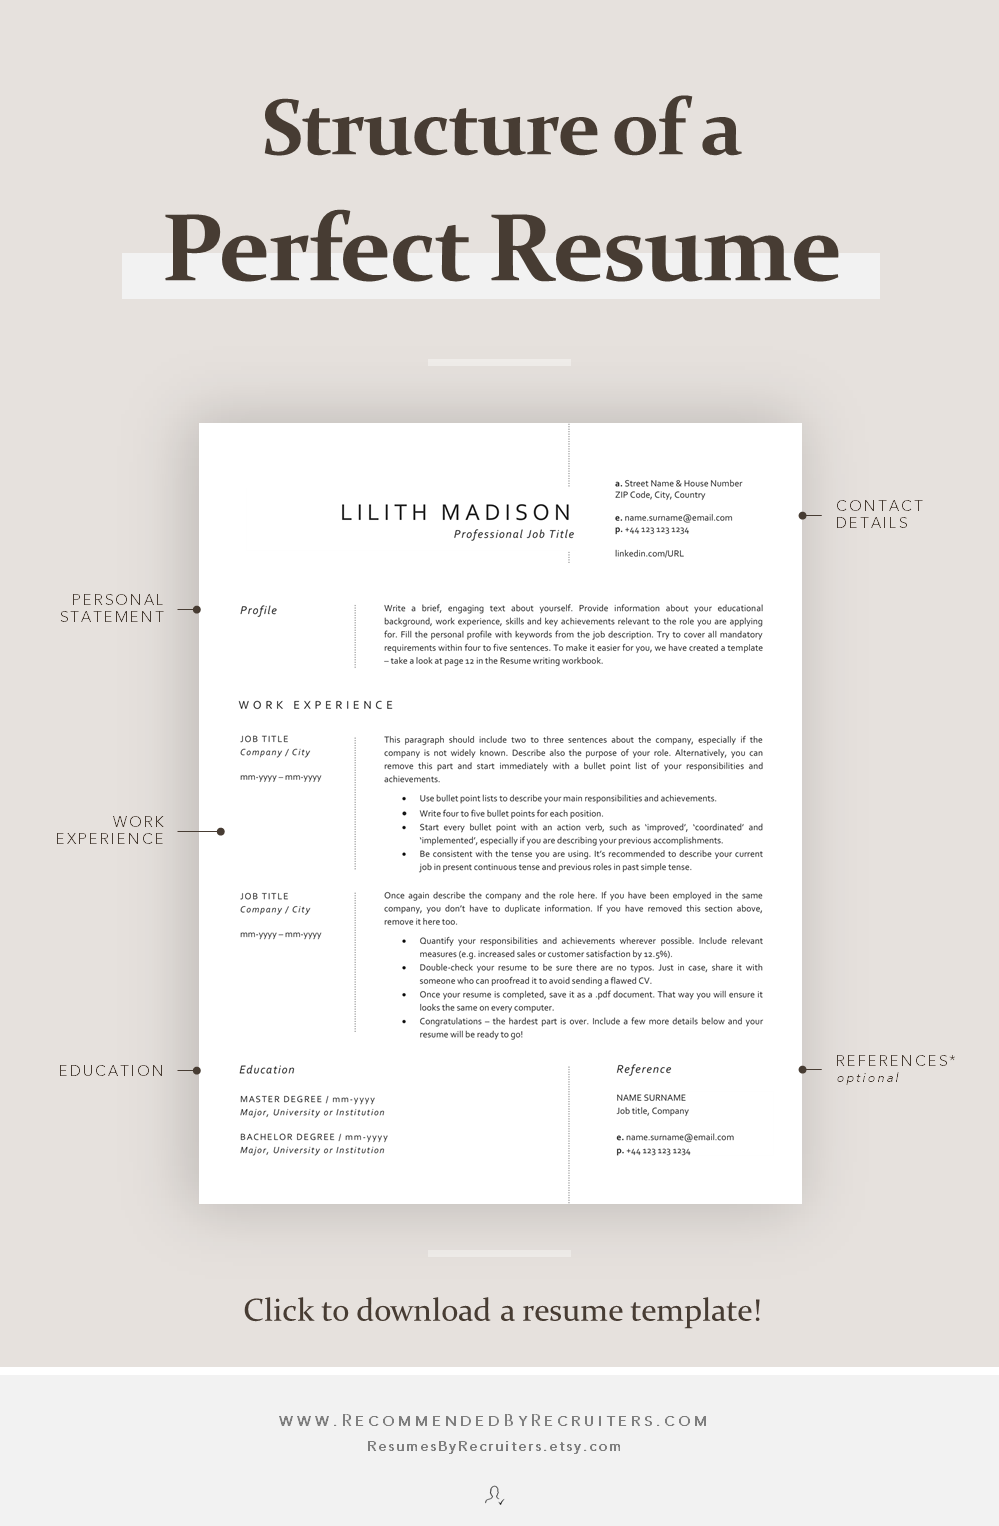 Resume Examples for Jobs with Experience Of Structure Of A Perfect Resume How to Structure Cv Main Parts Of A Resume Curriculum Vitae Advice